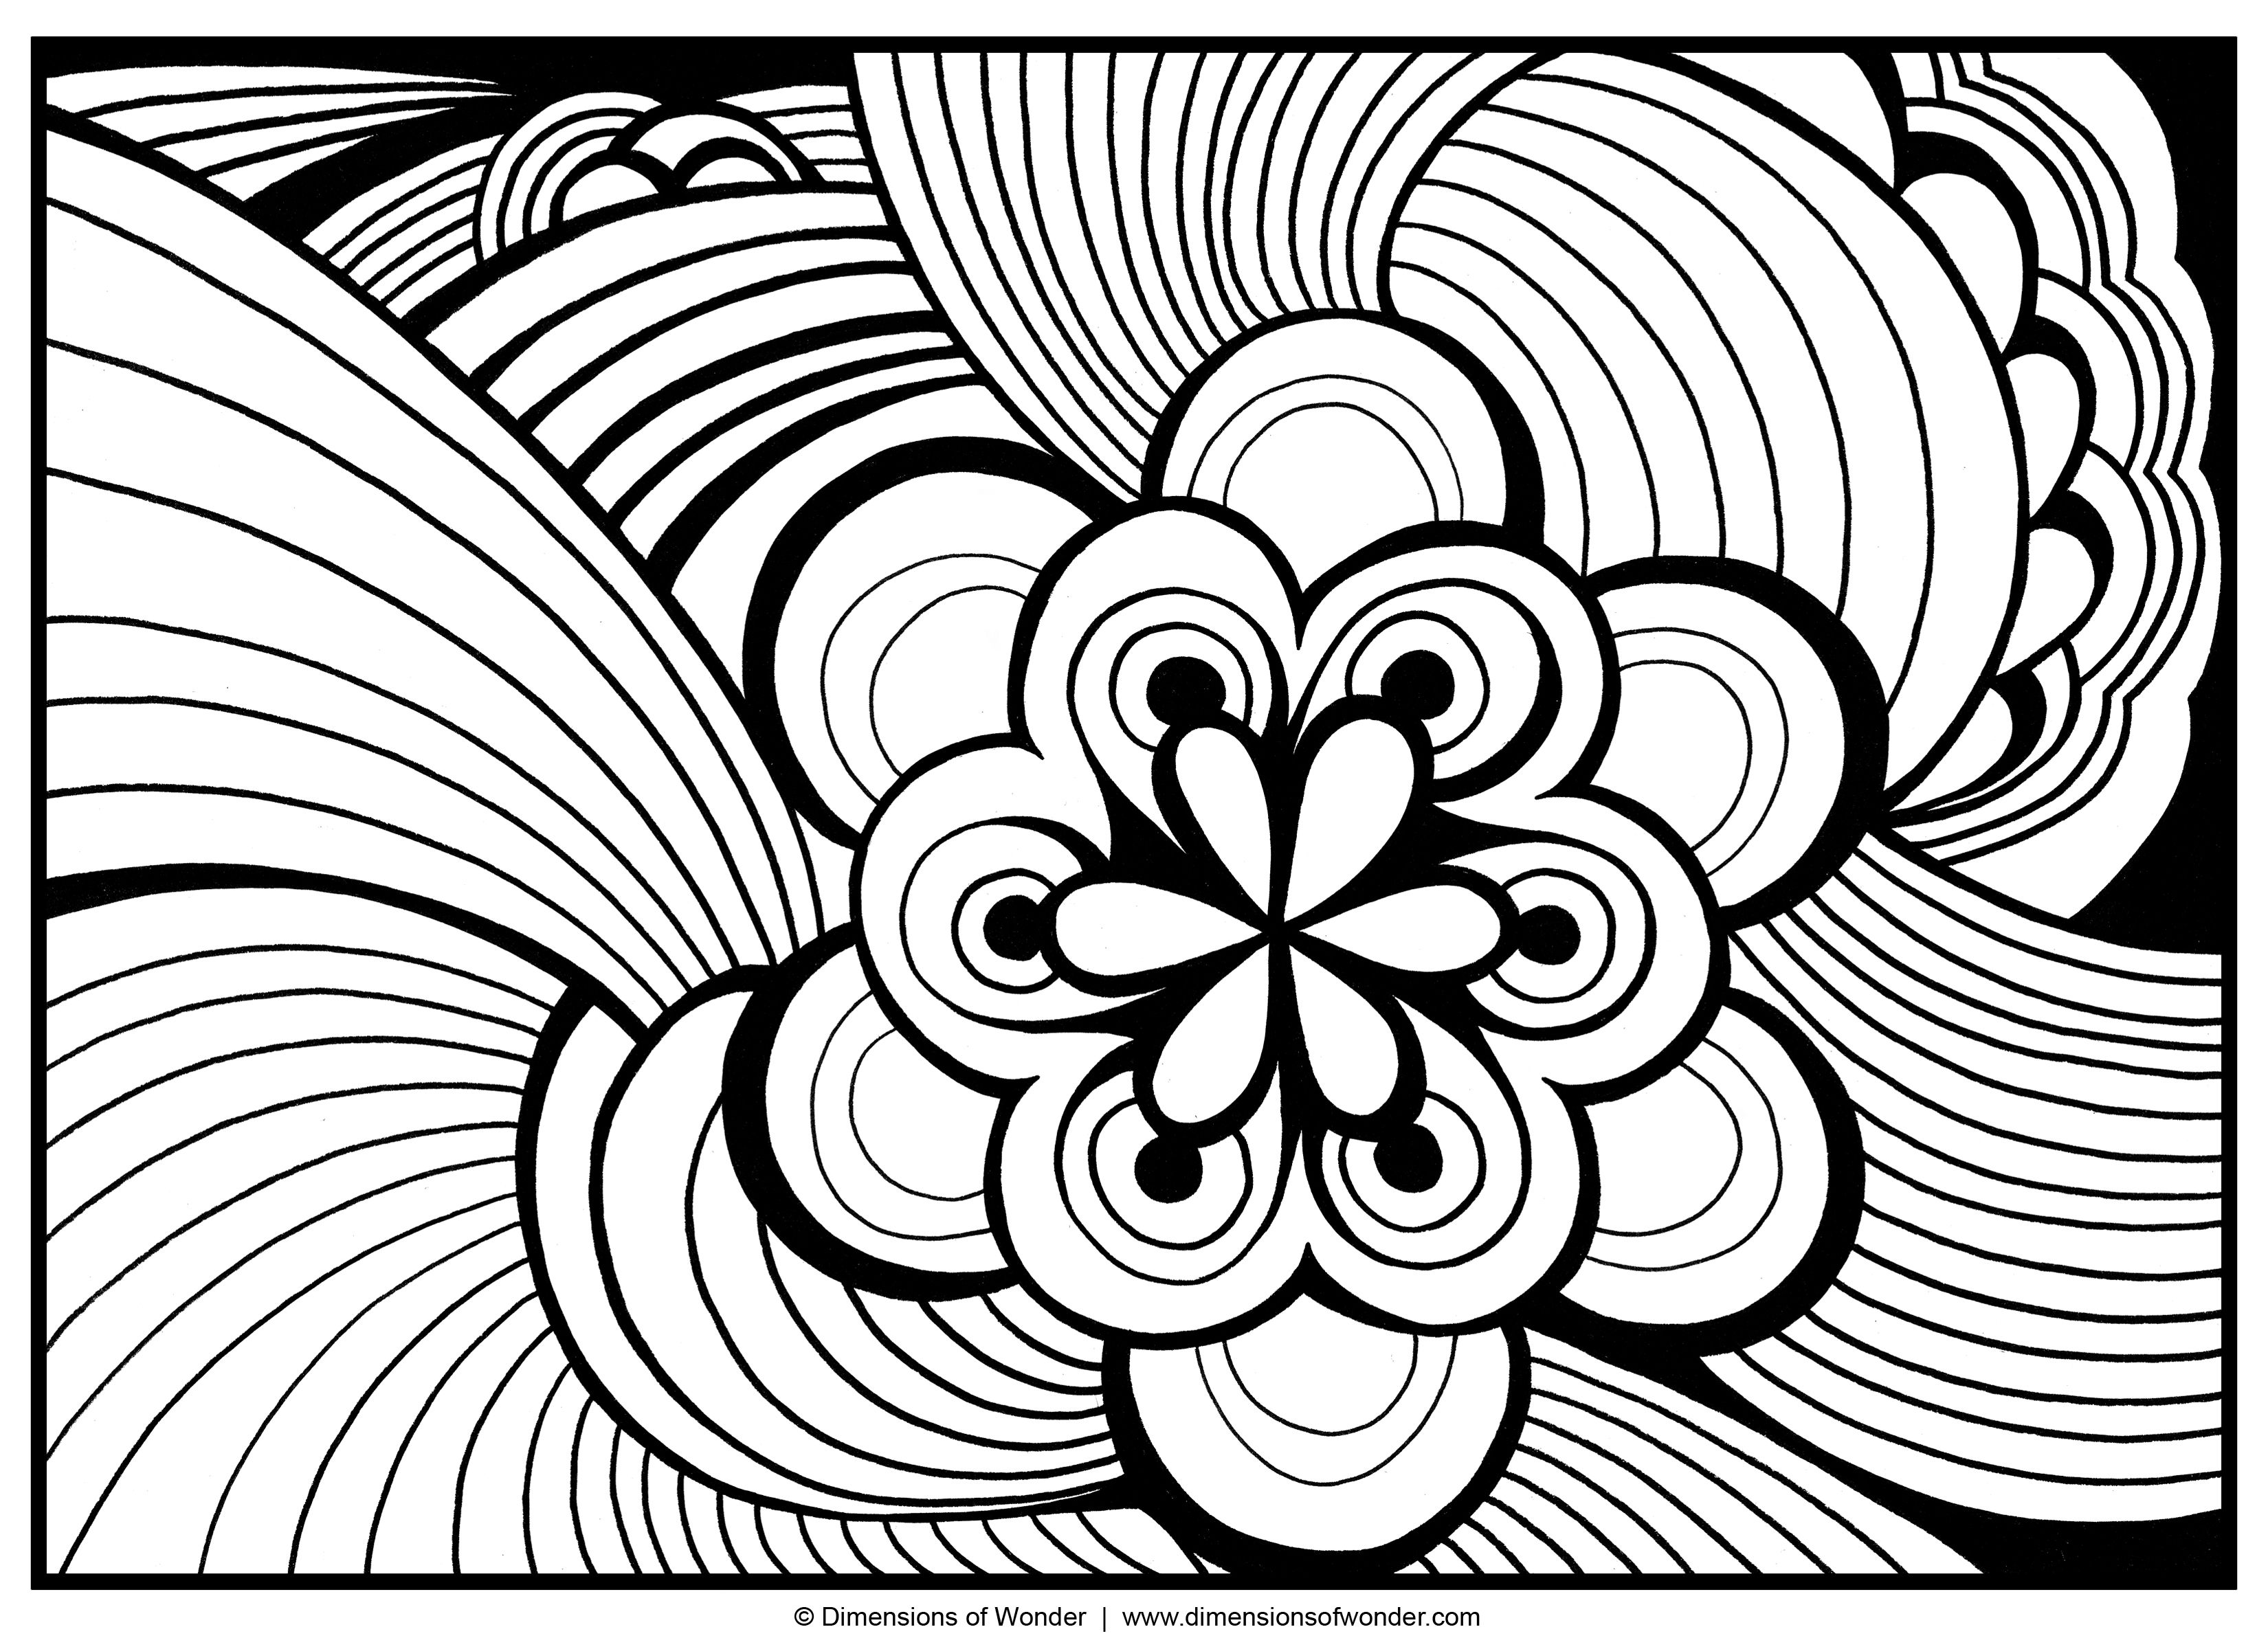 Online childrens coloring pages - Kids Online Abstract Coloring Pages